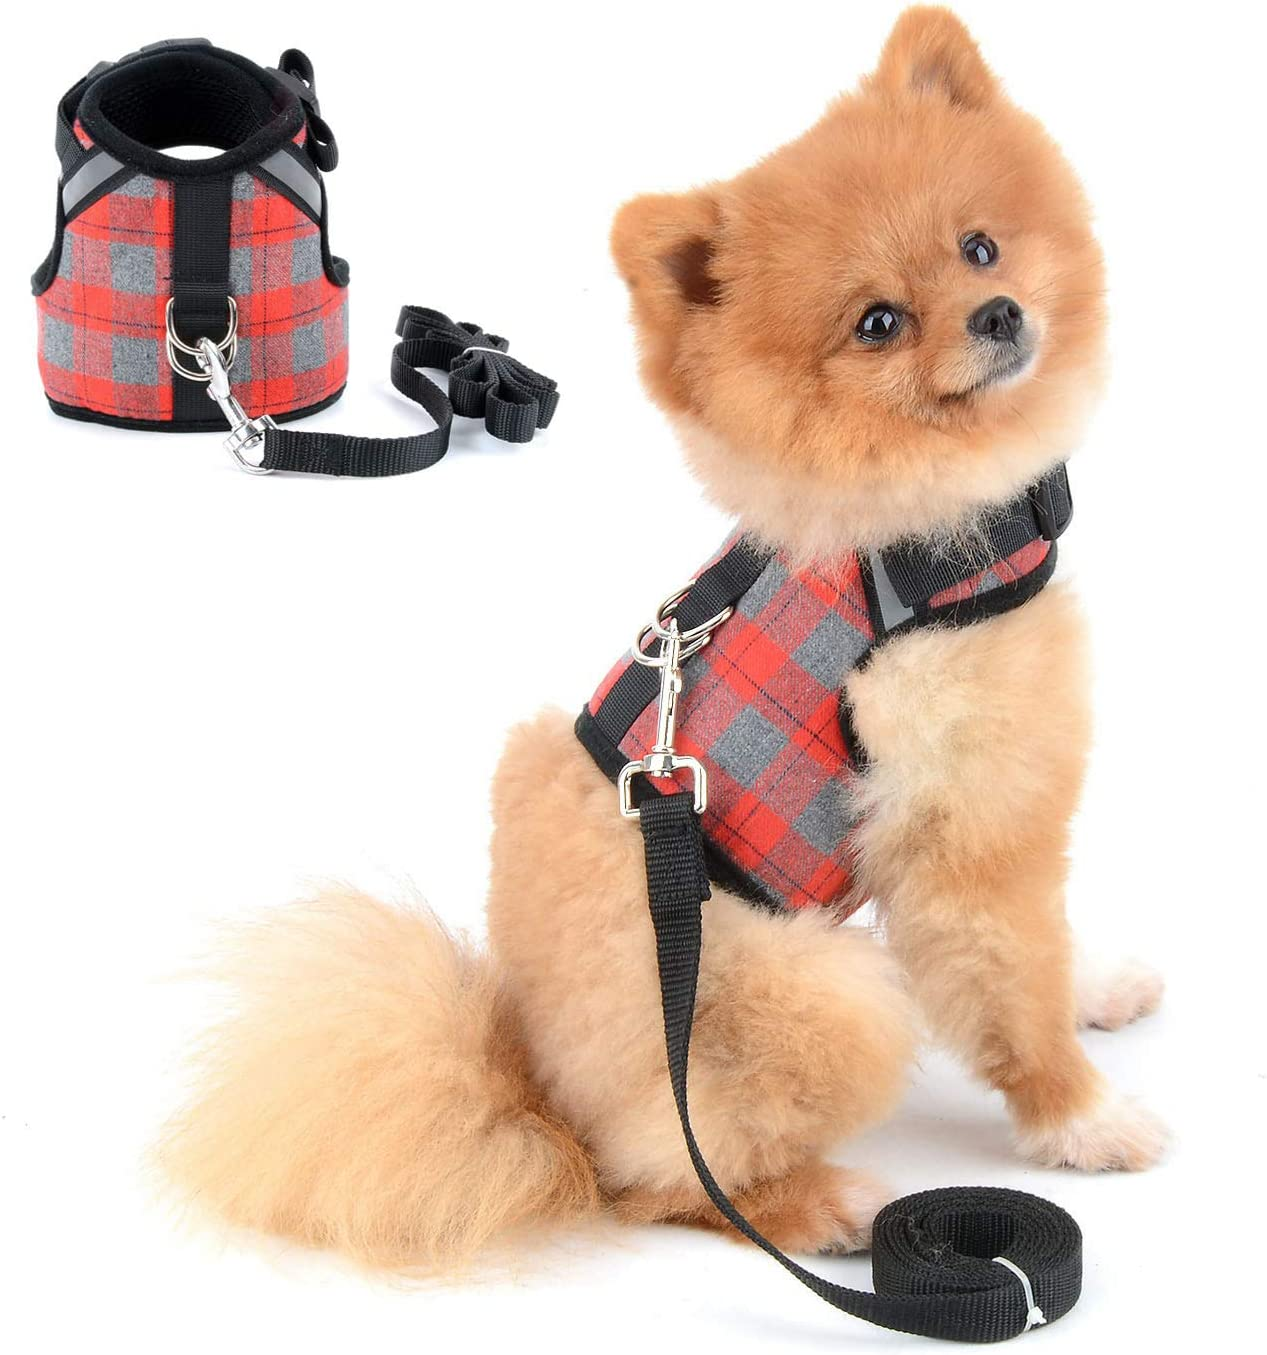 SELMAI Escape Proof Cat Harness and Leash for Walking Plaid Pattern Mesh Vest Harness with Leash for Small Dogs Training Leads No Pull for Puppy Chihuahua Dachshund Hiking Jogging Outdoor